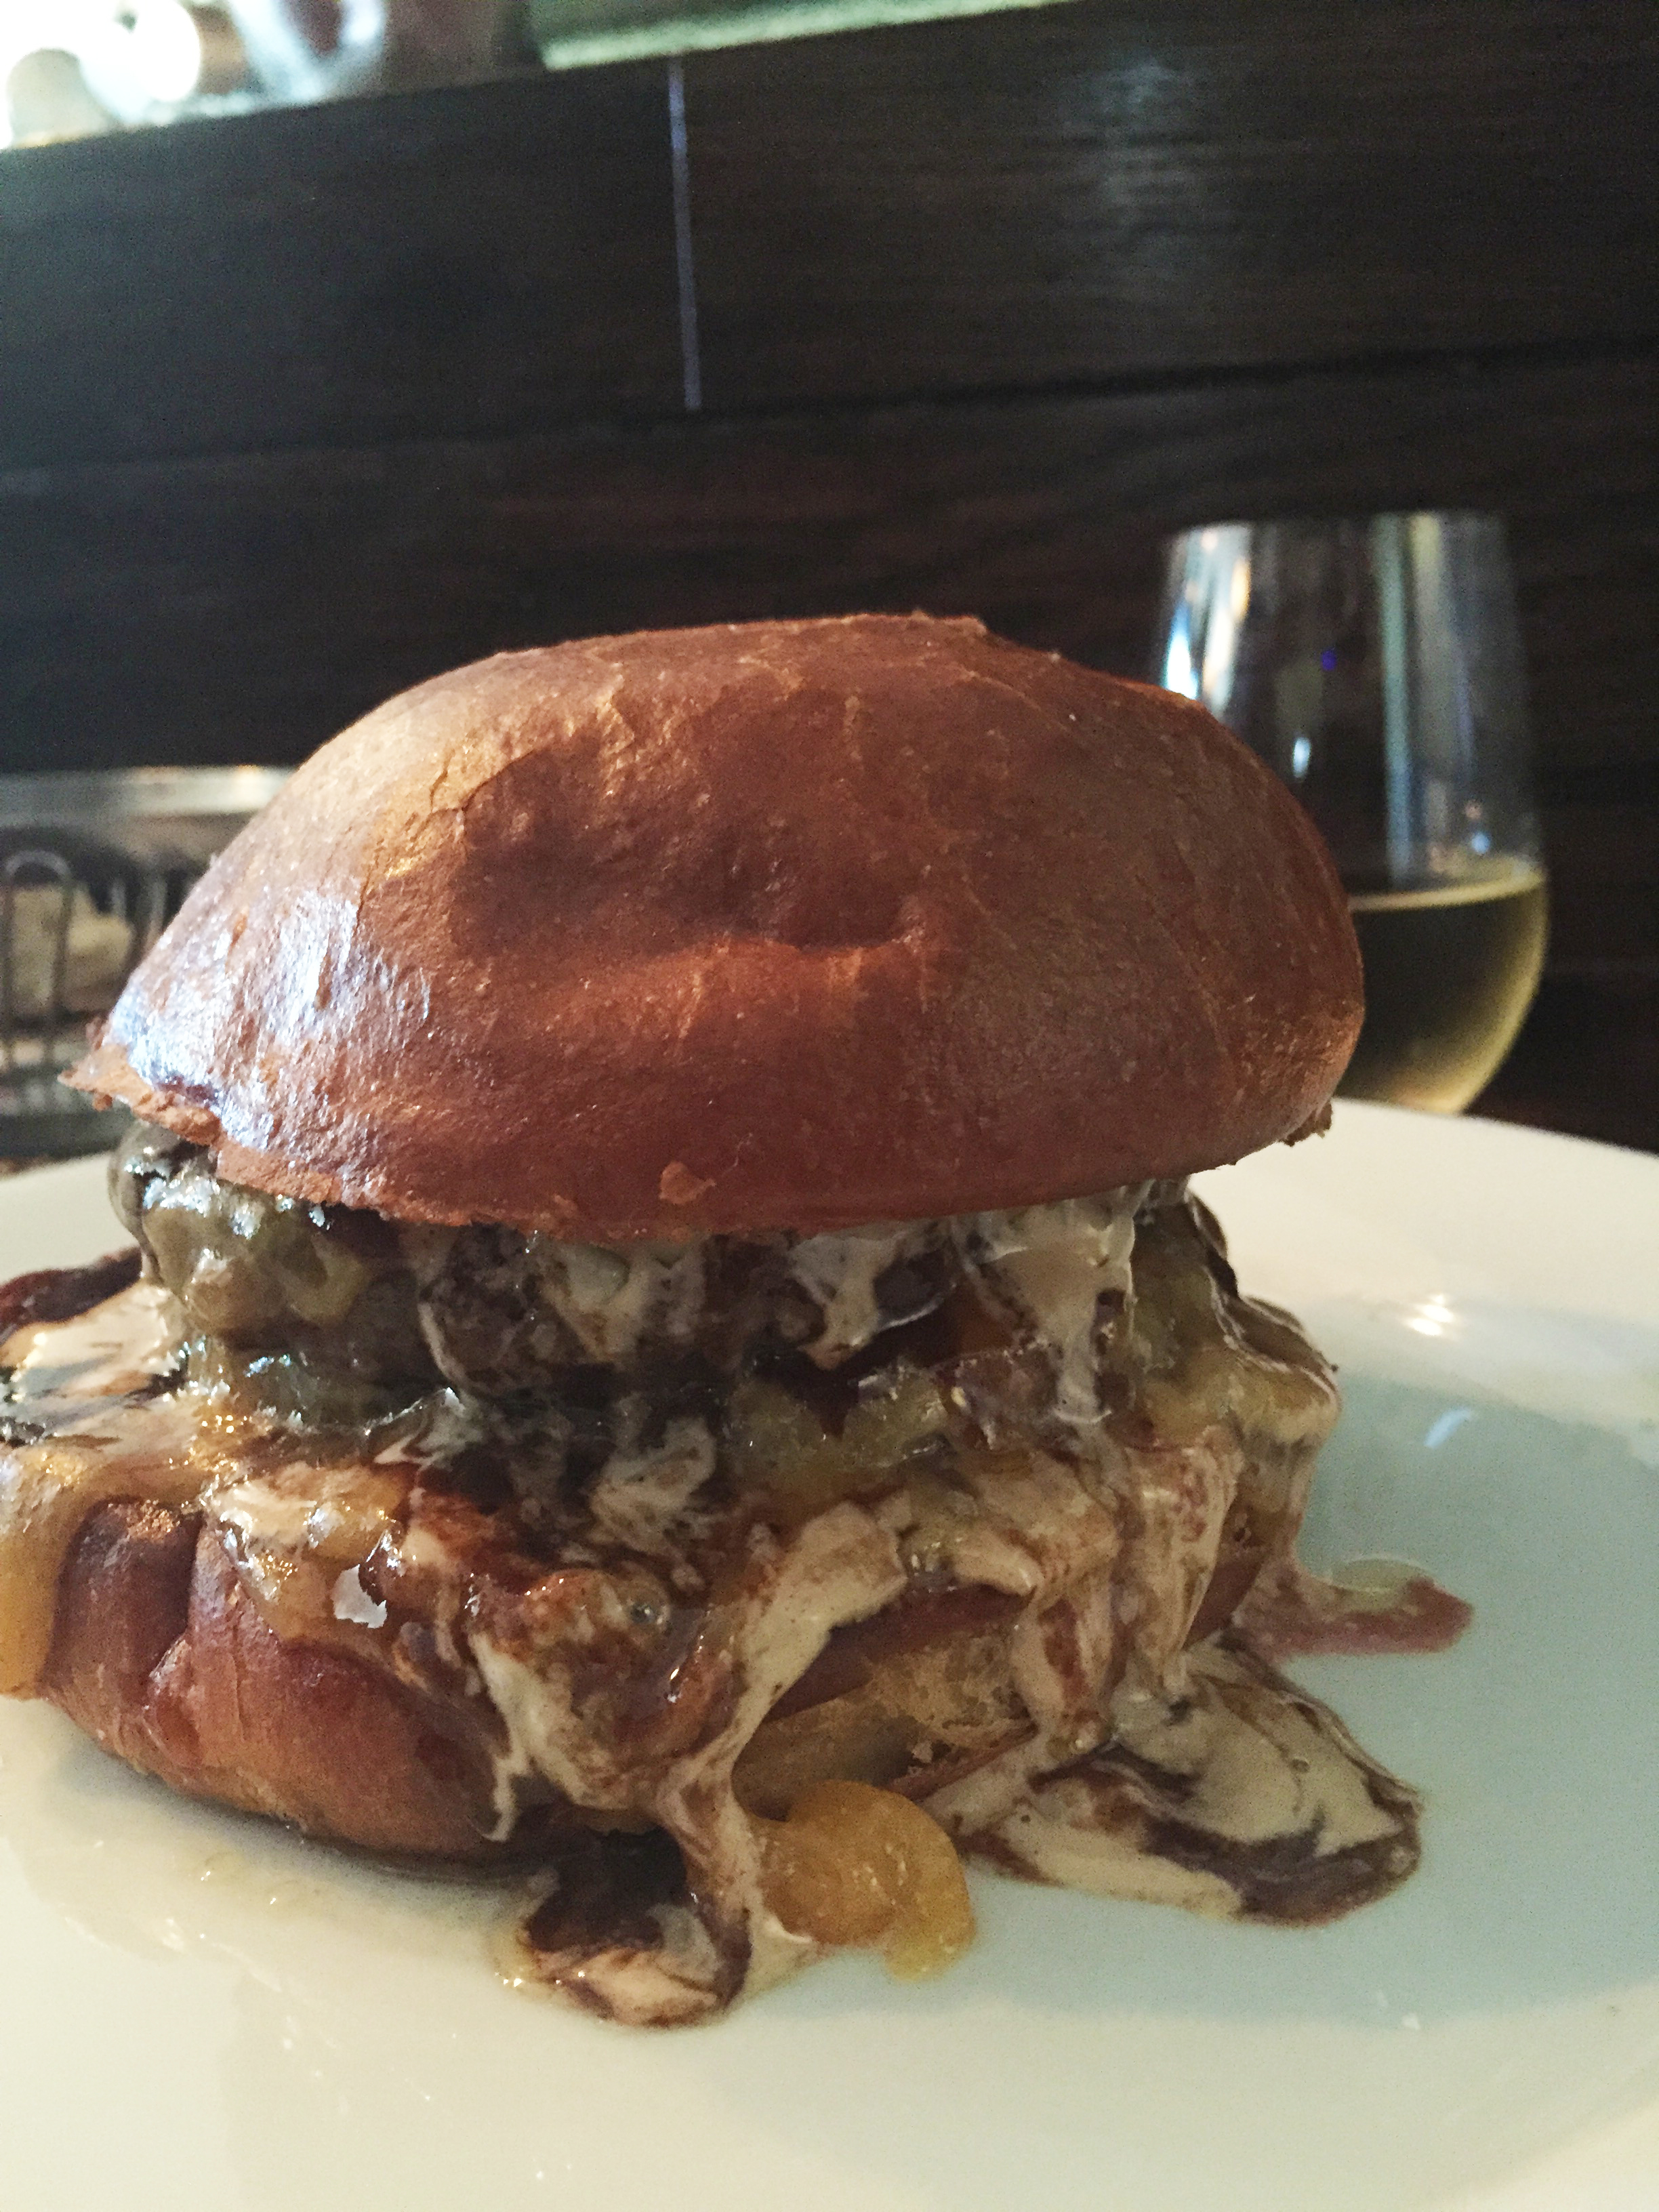 The Big Mec, with two prime beef patties,caramelized onions, garlic aioli, American cheese, and red wine bordelaise.